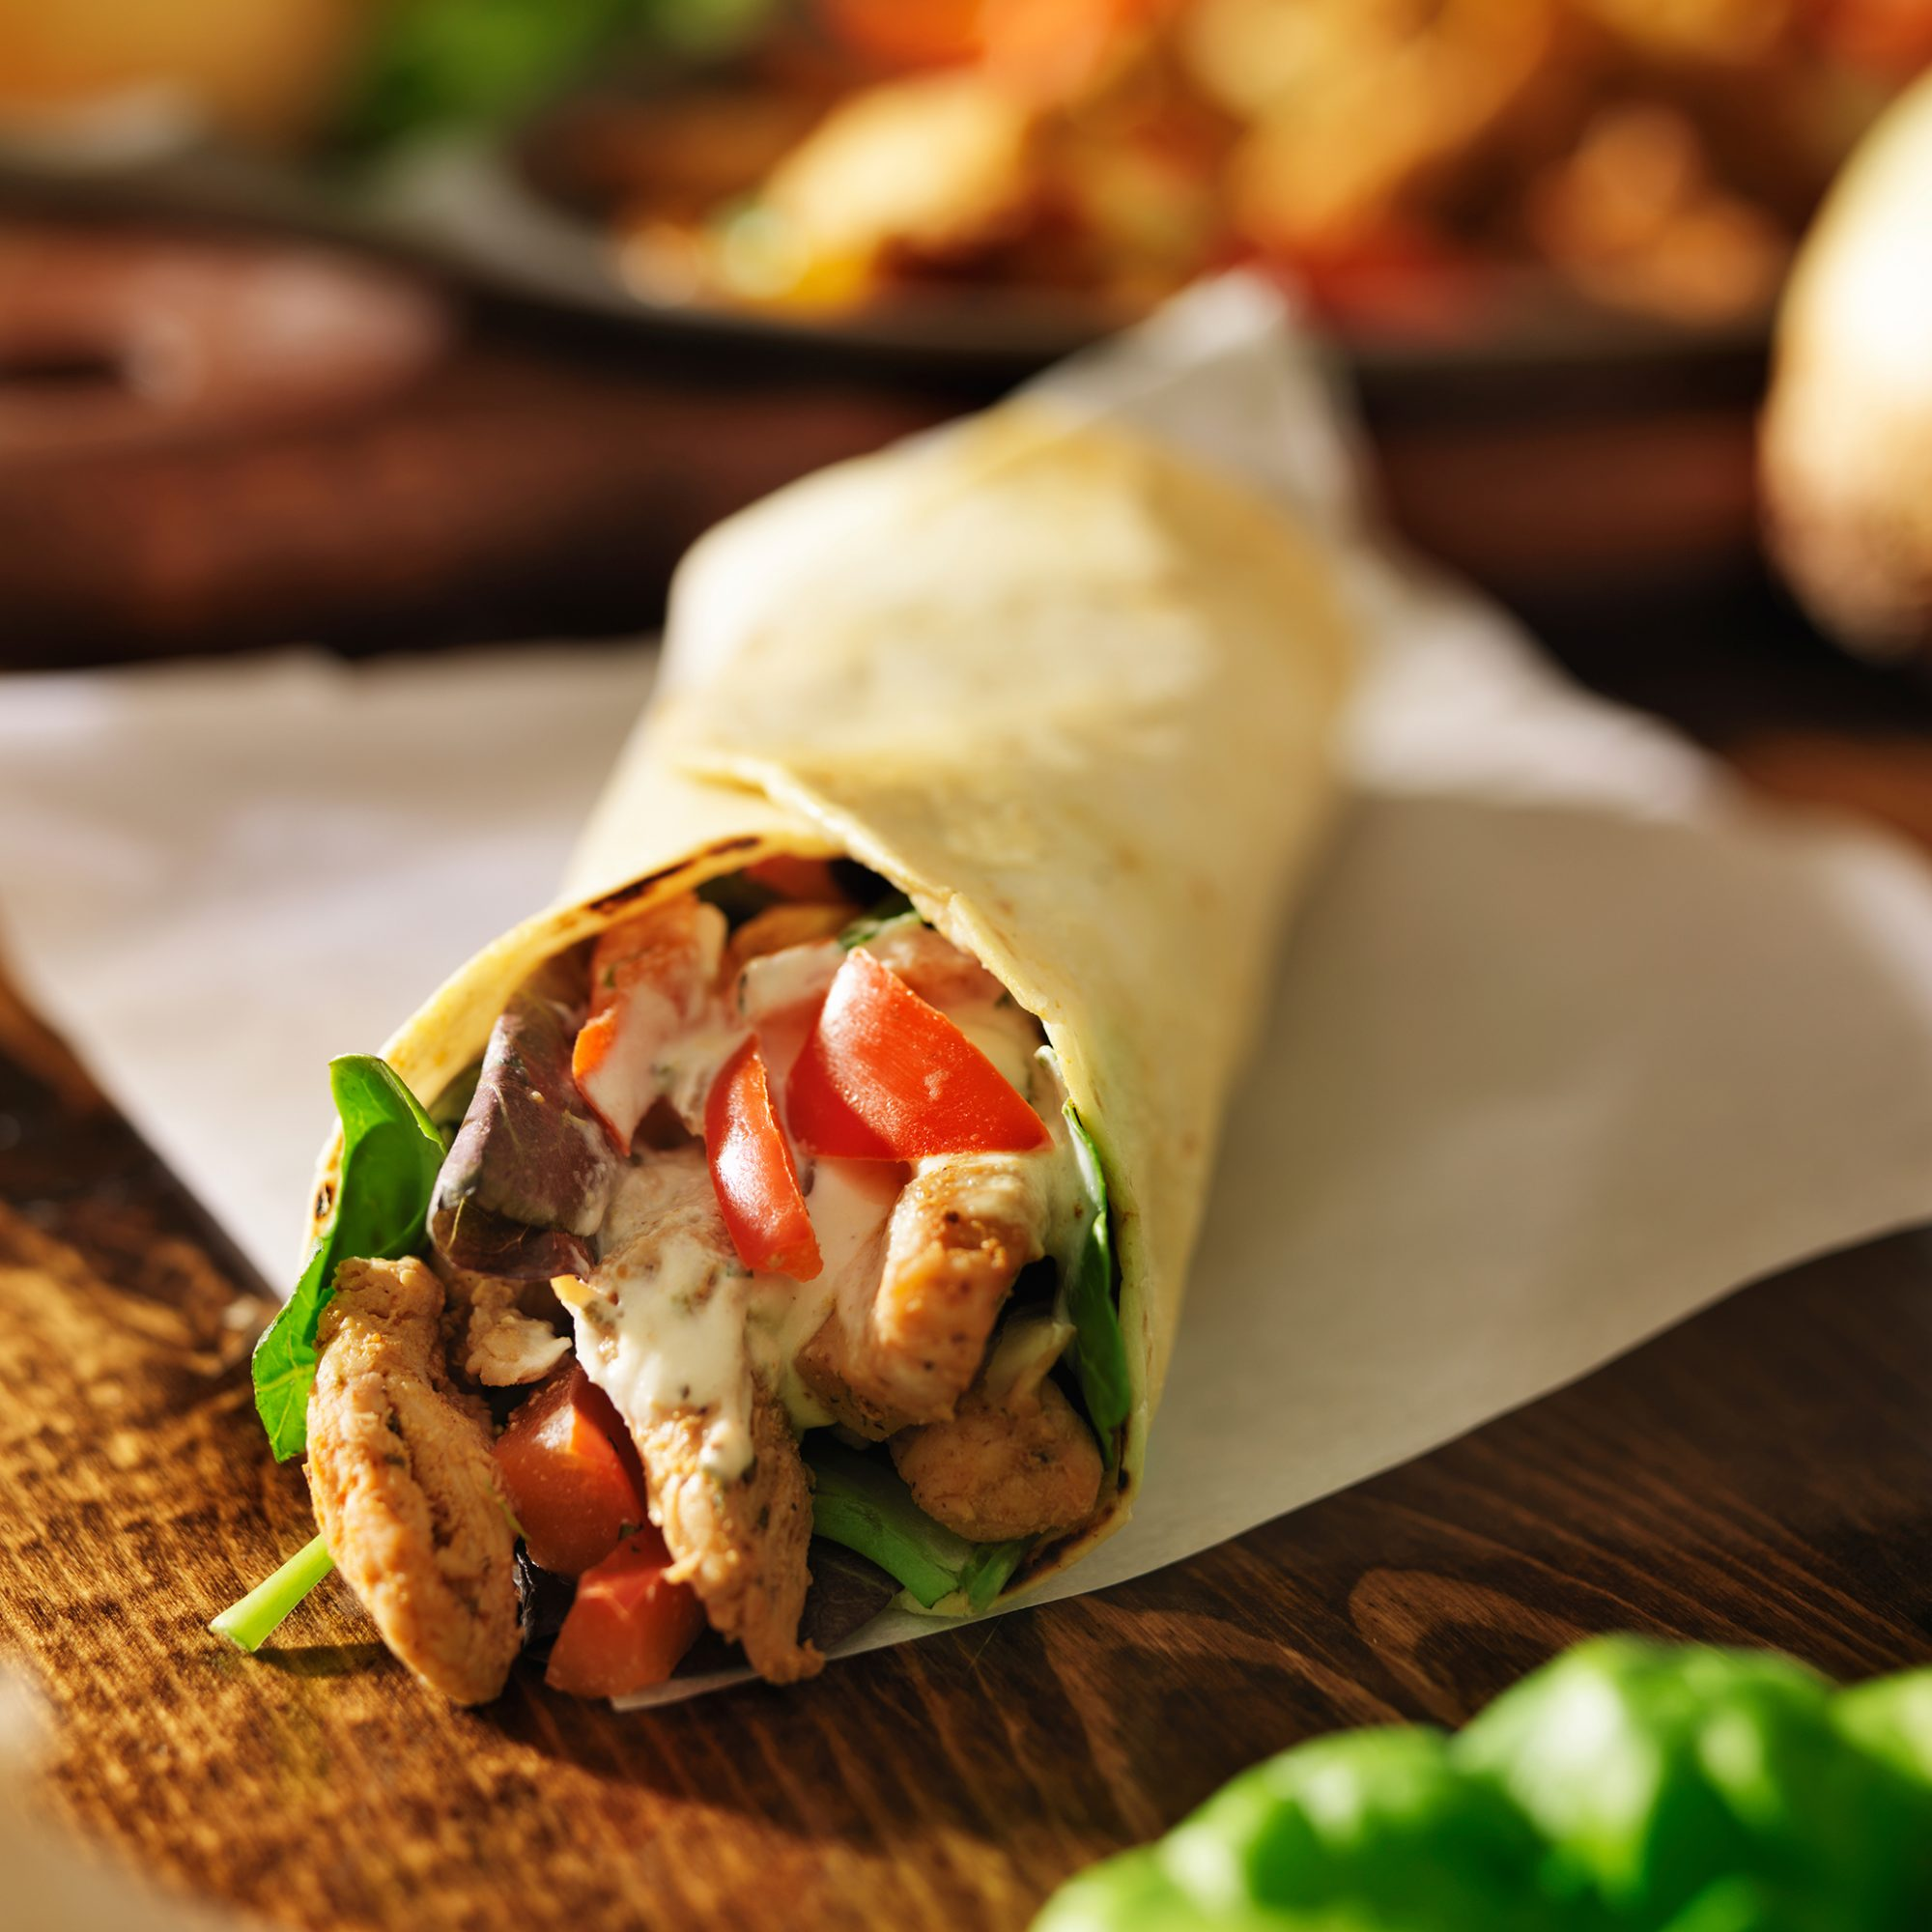 FWX WRAPS ARENT THAT GOOD FOR YOU